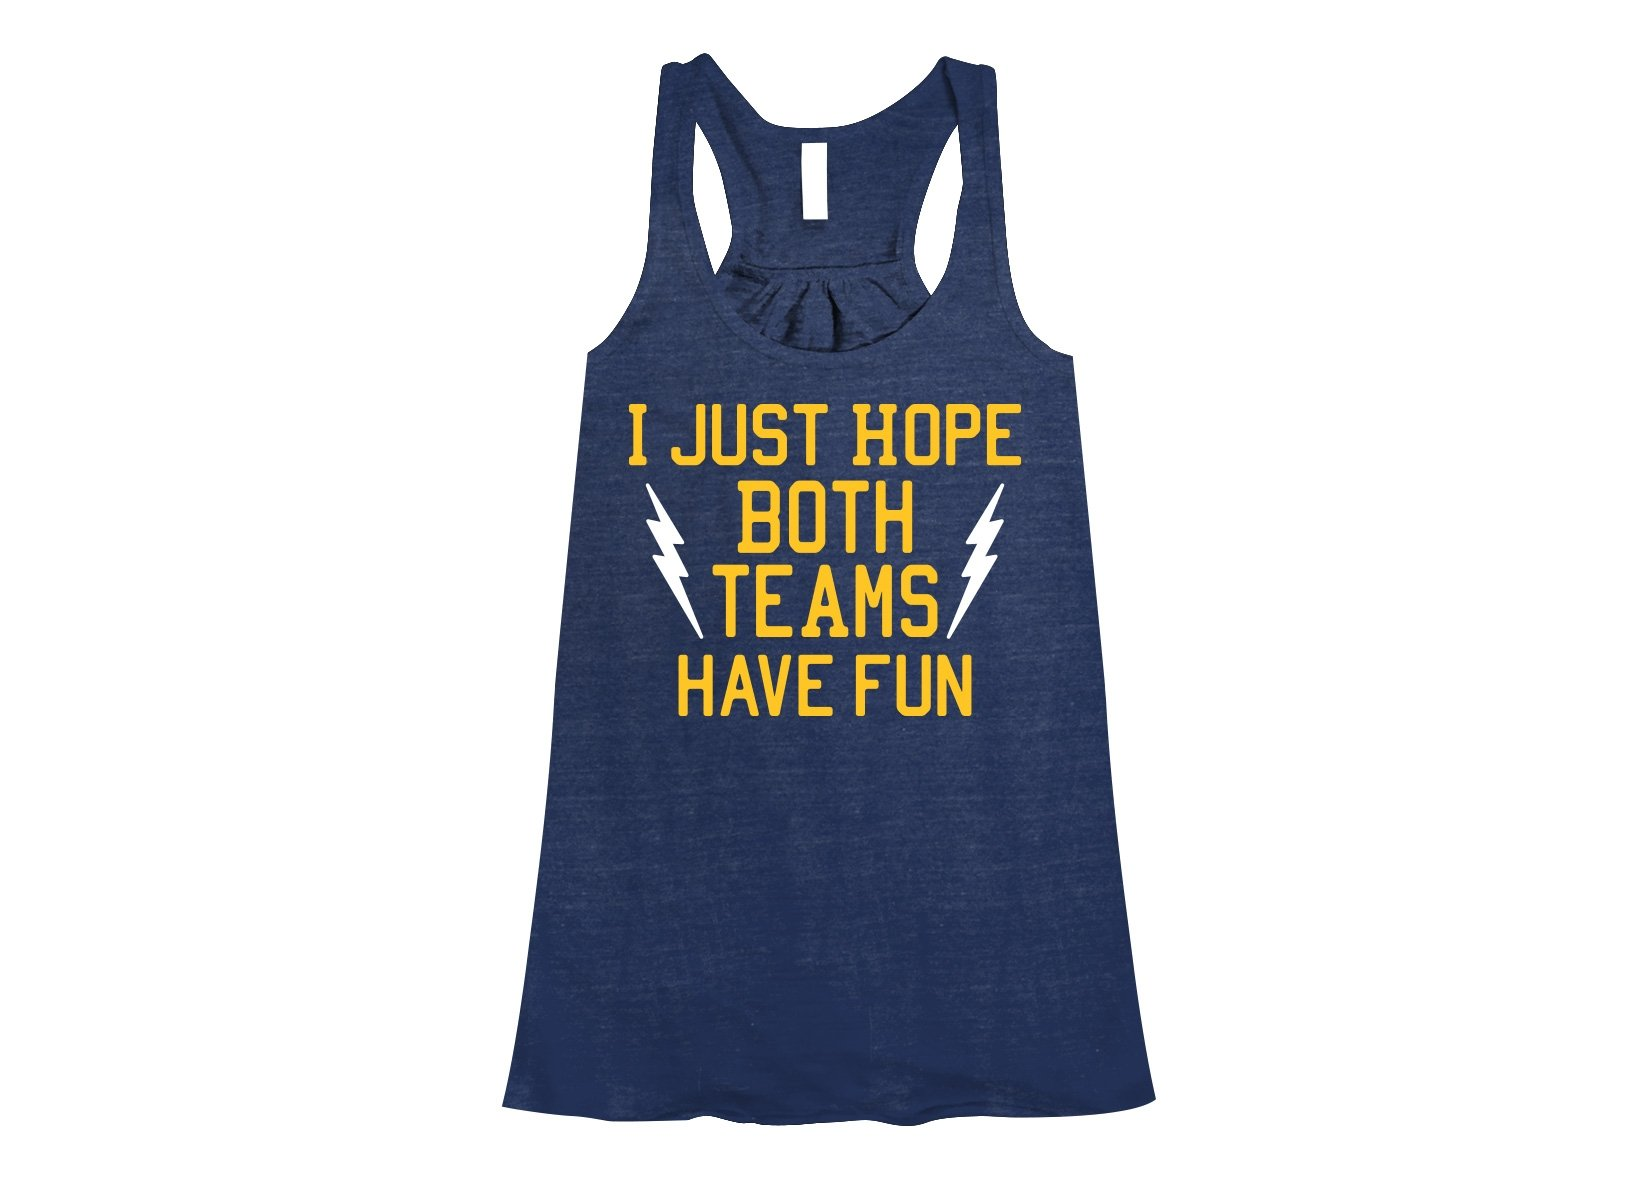 I Just Hope Both Teams Have Fun on Womens Tanks T-Shirt